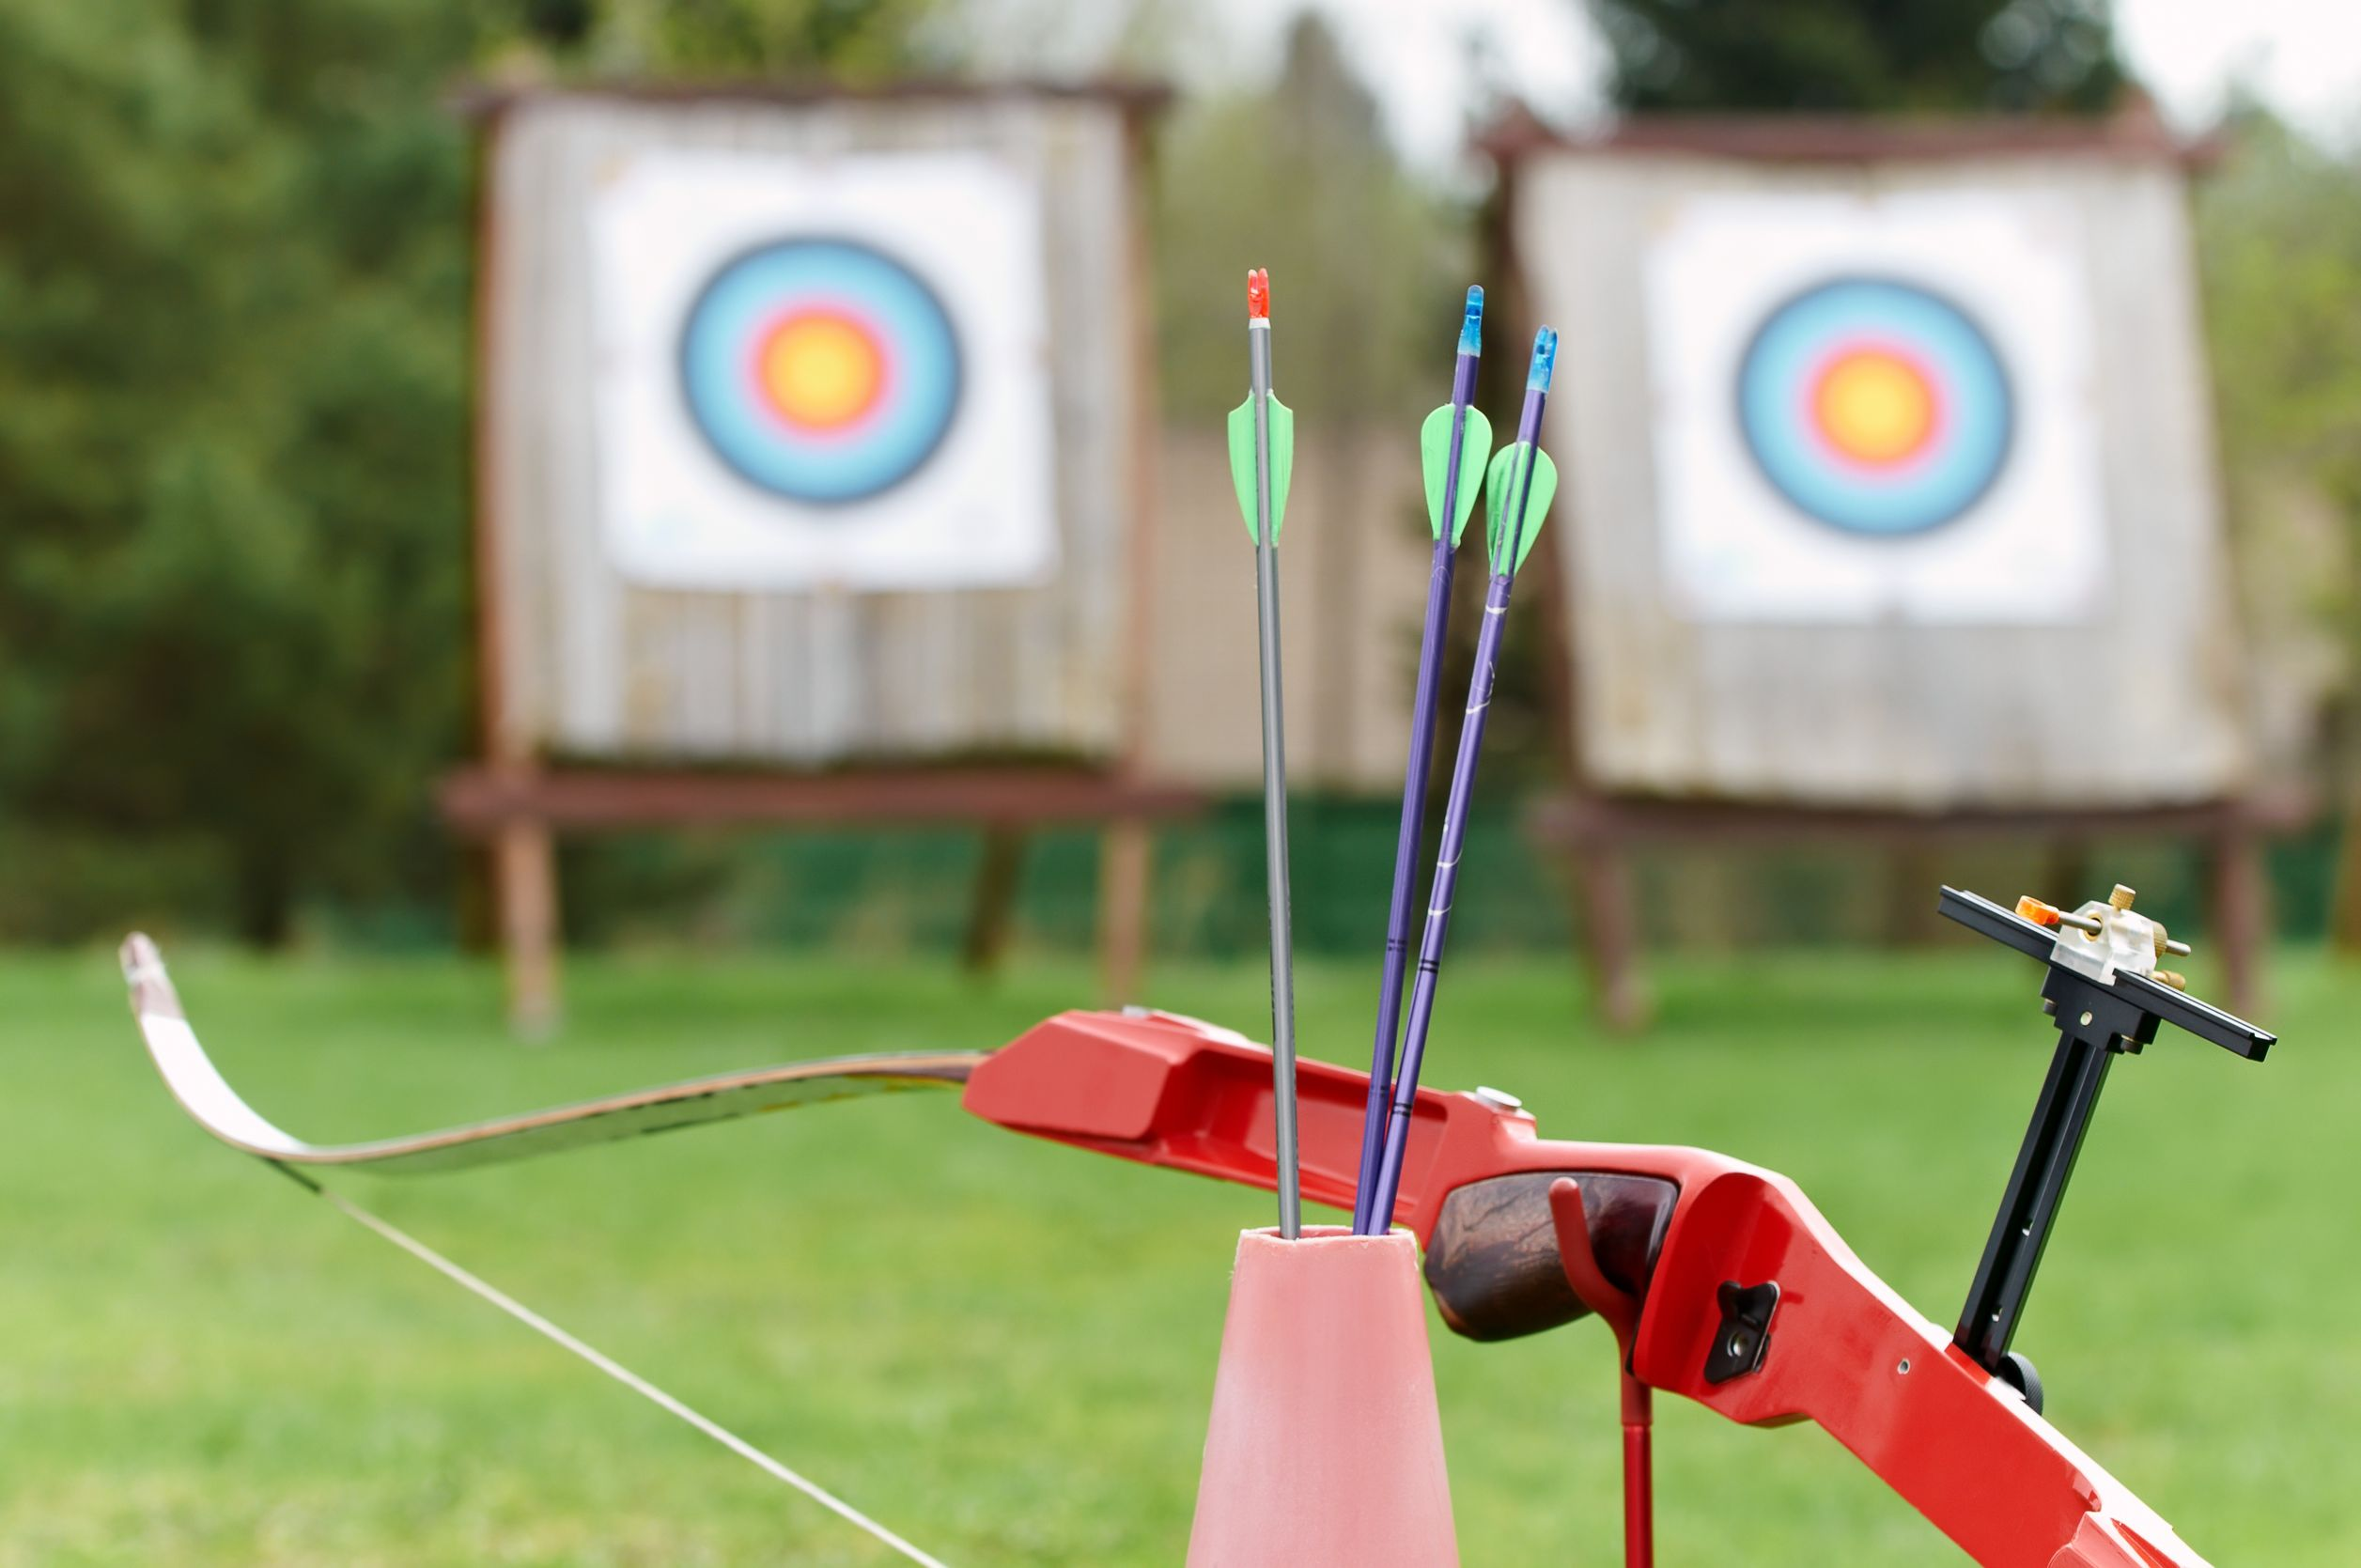 Archery for Company Family Fun Day Midlands, Segways for Company Family Fun Day Midlands, Shooting Activities for Company Family Fun Day Midlands